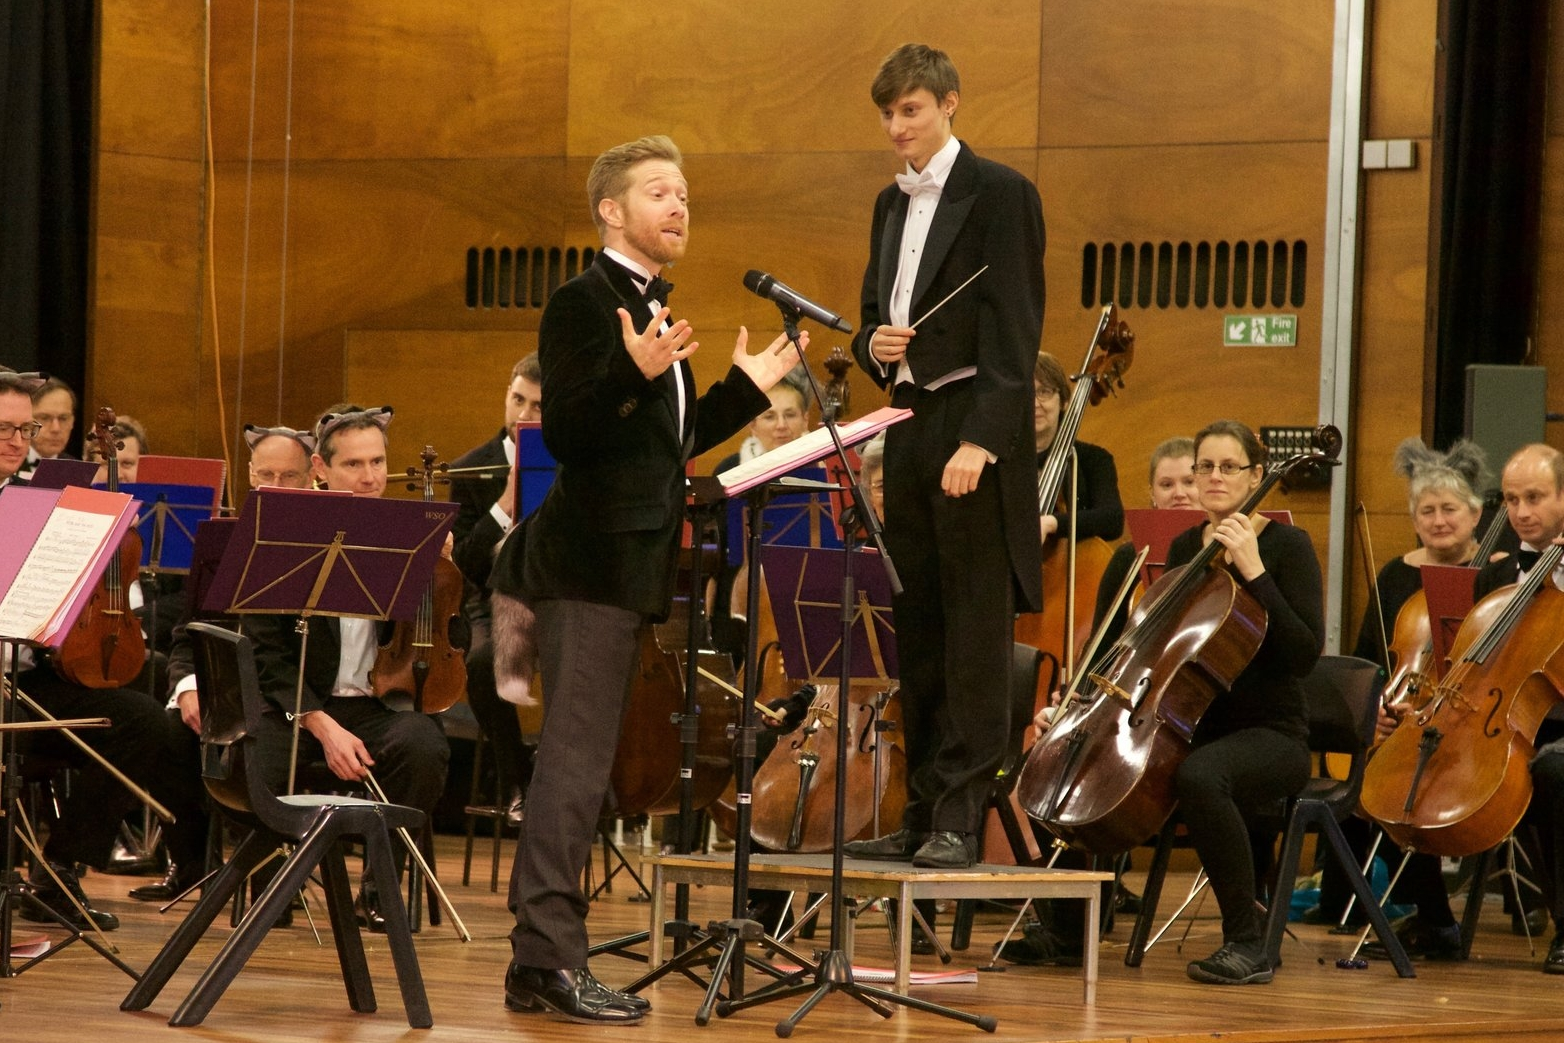 Zeb SOanes and Leo Geyer performing  Peter and the Wolf